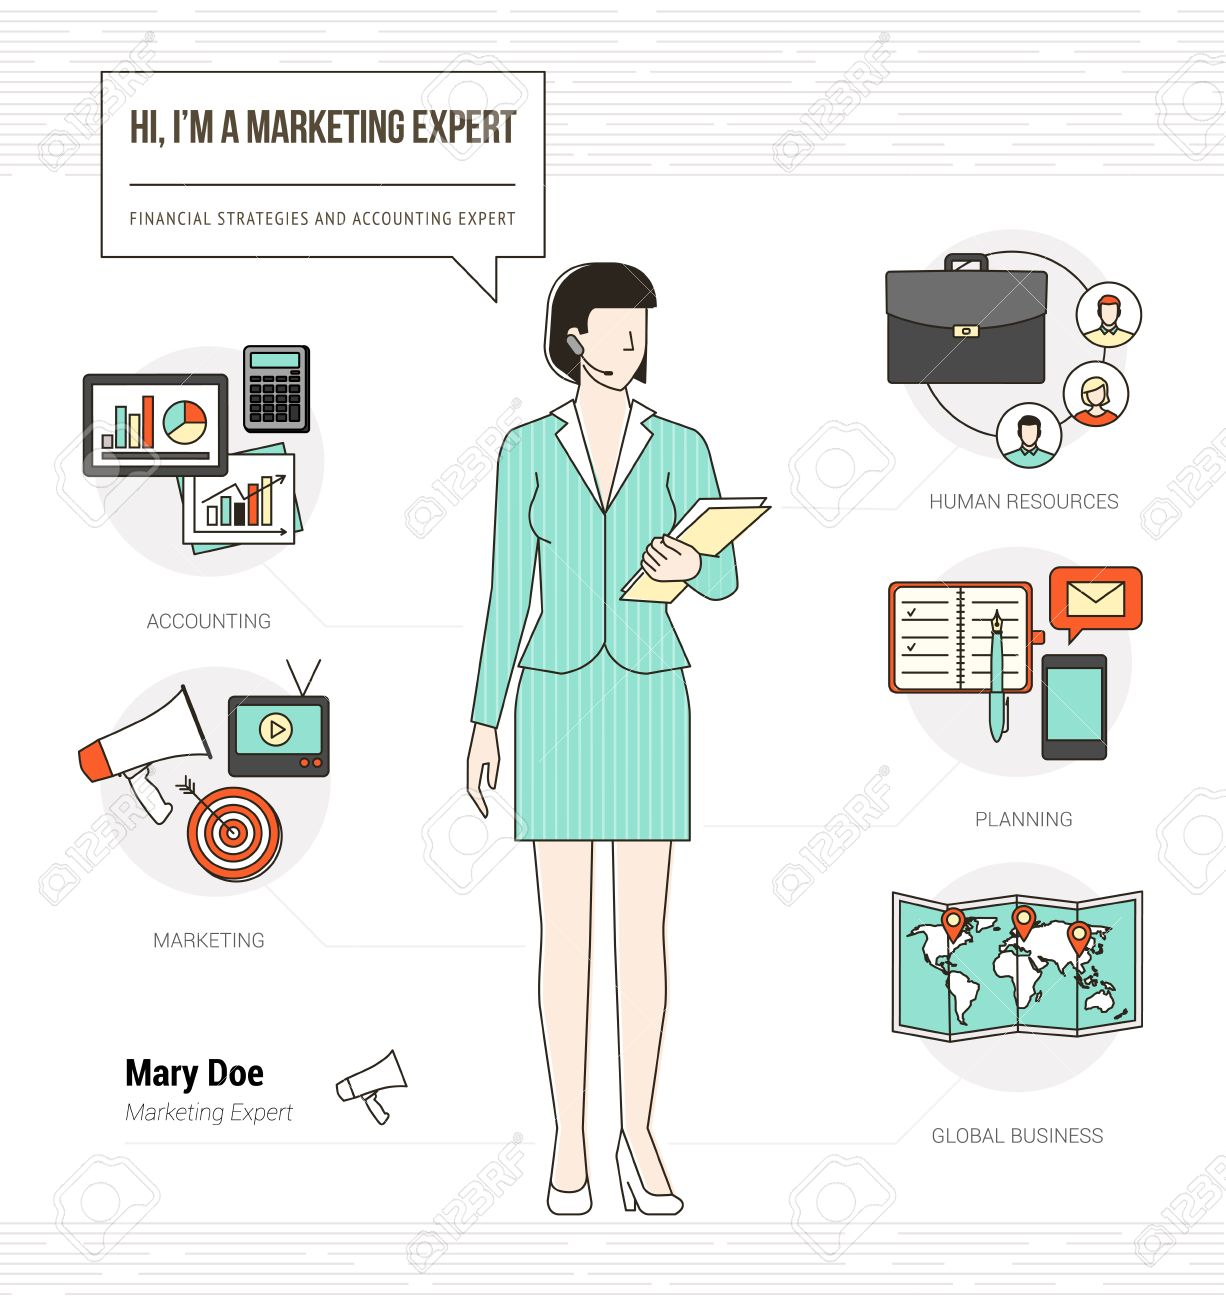 professional marketing expert infographic skills resume professional marketing expert infographic skills resume work tools equipment and icons stock vector